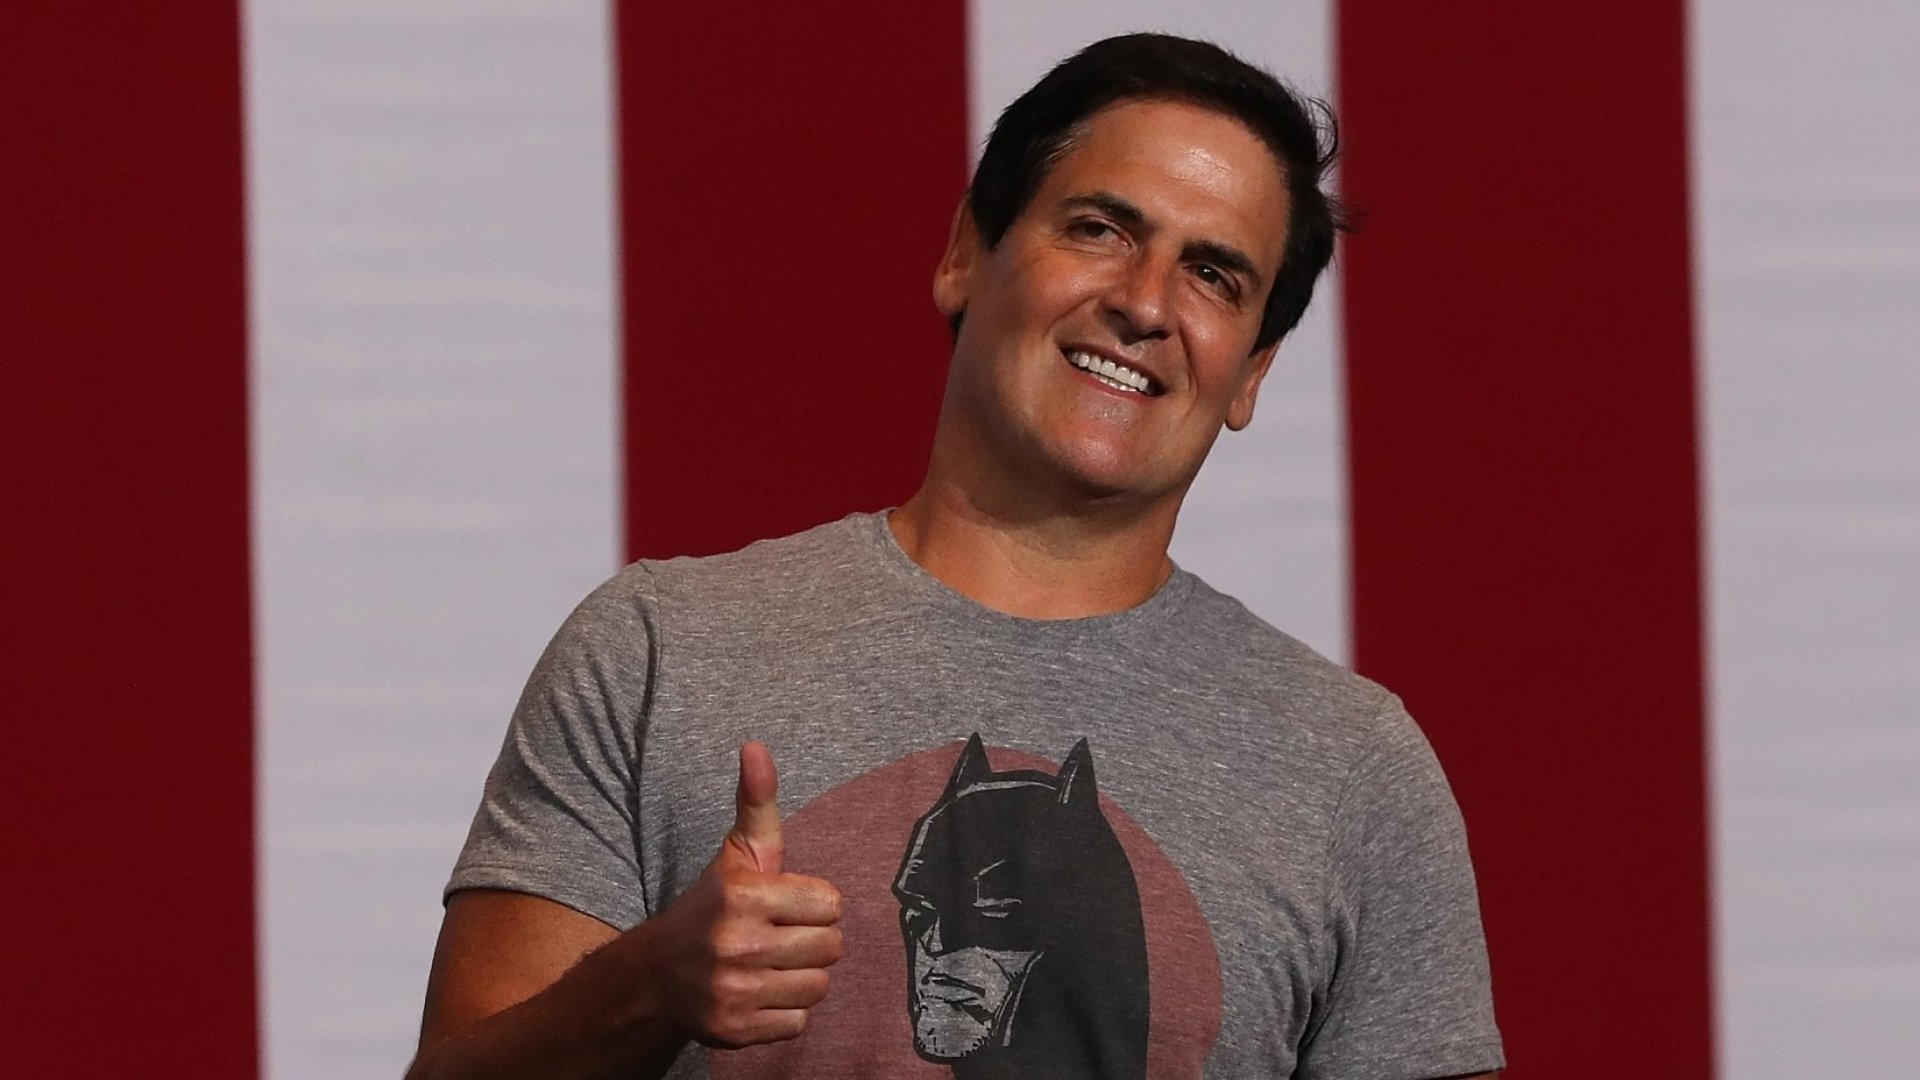 Mark Cuban Debates Carl Icahn on Twitter Over Presidential Candidates